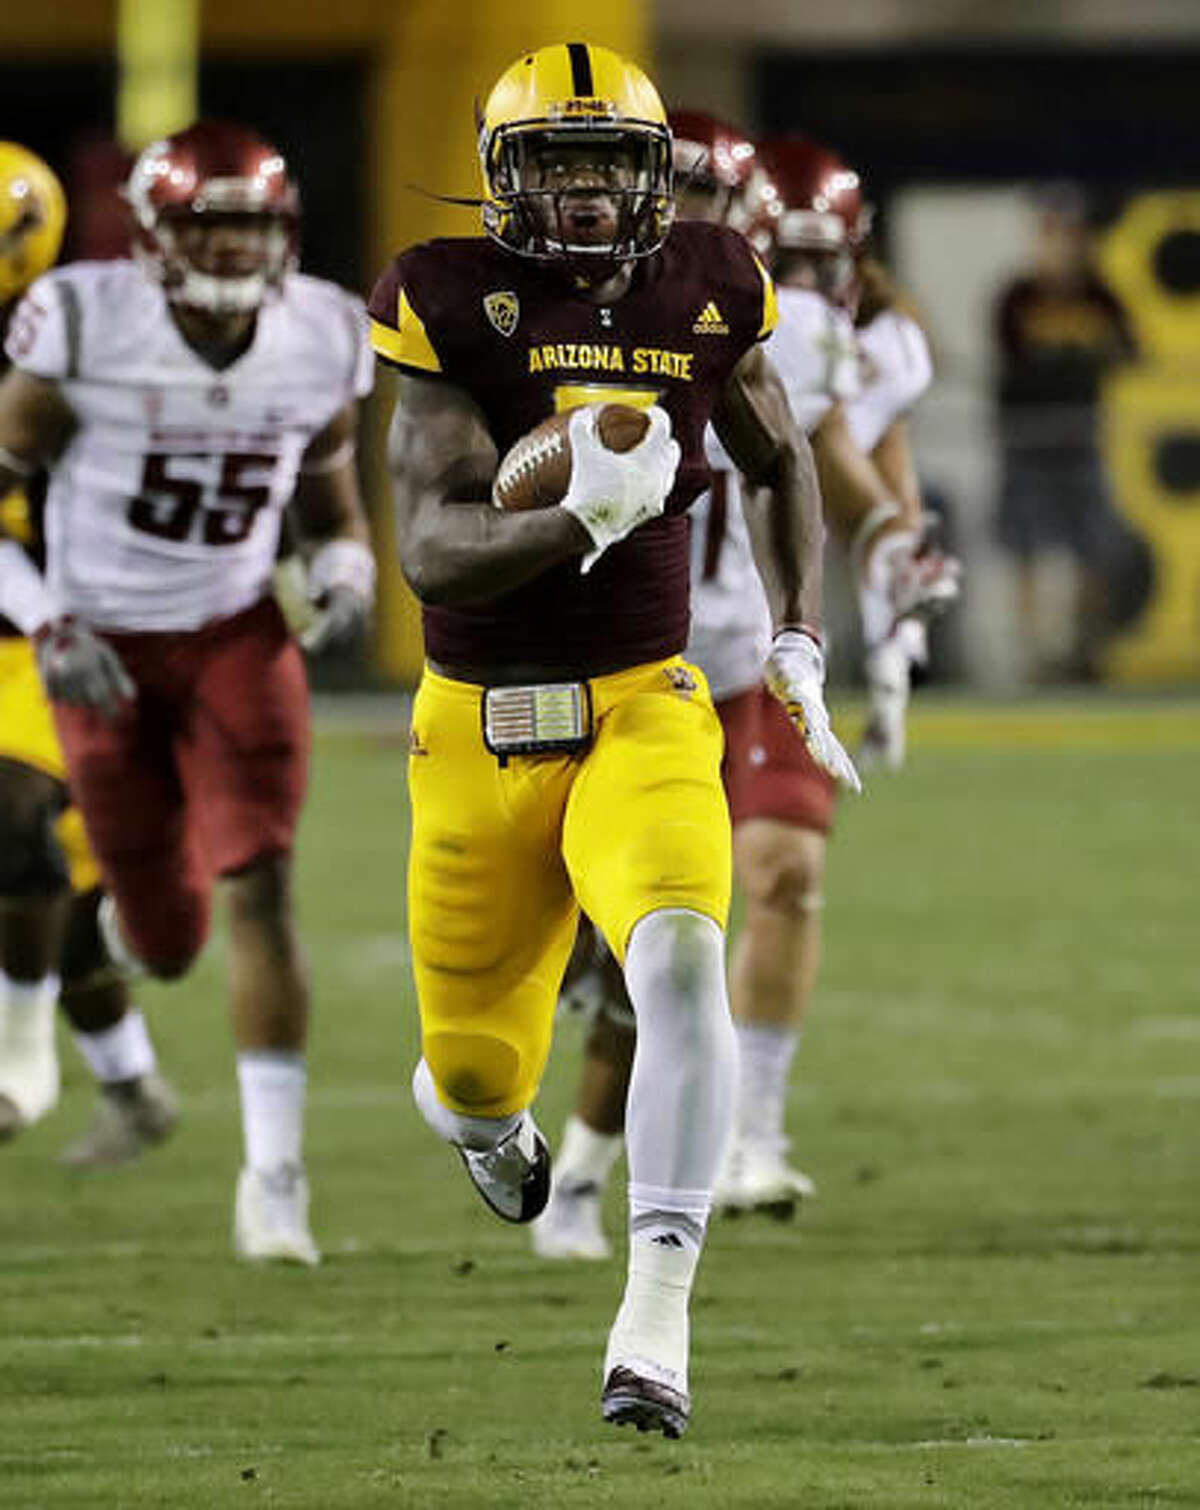 FILE - In this Oct. 22, 2016, file photo, Arizona State running back Kalen Ballage runs in for a touchdown against Washington State during the first half of an NCAA college football game in Tempe, Ariz. Arizona State plays Oregon, who has a five game losing streak going, in Eugene, Ore., on Saturday. (AP Photo/Matt York, File)